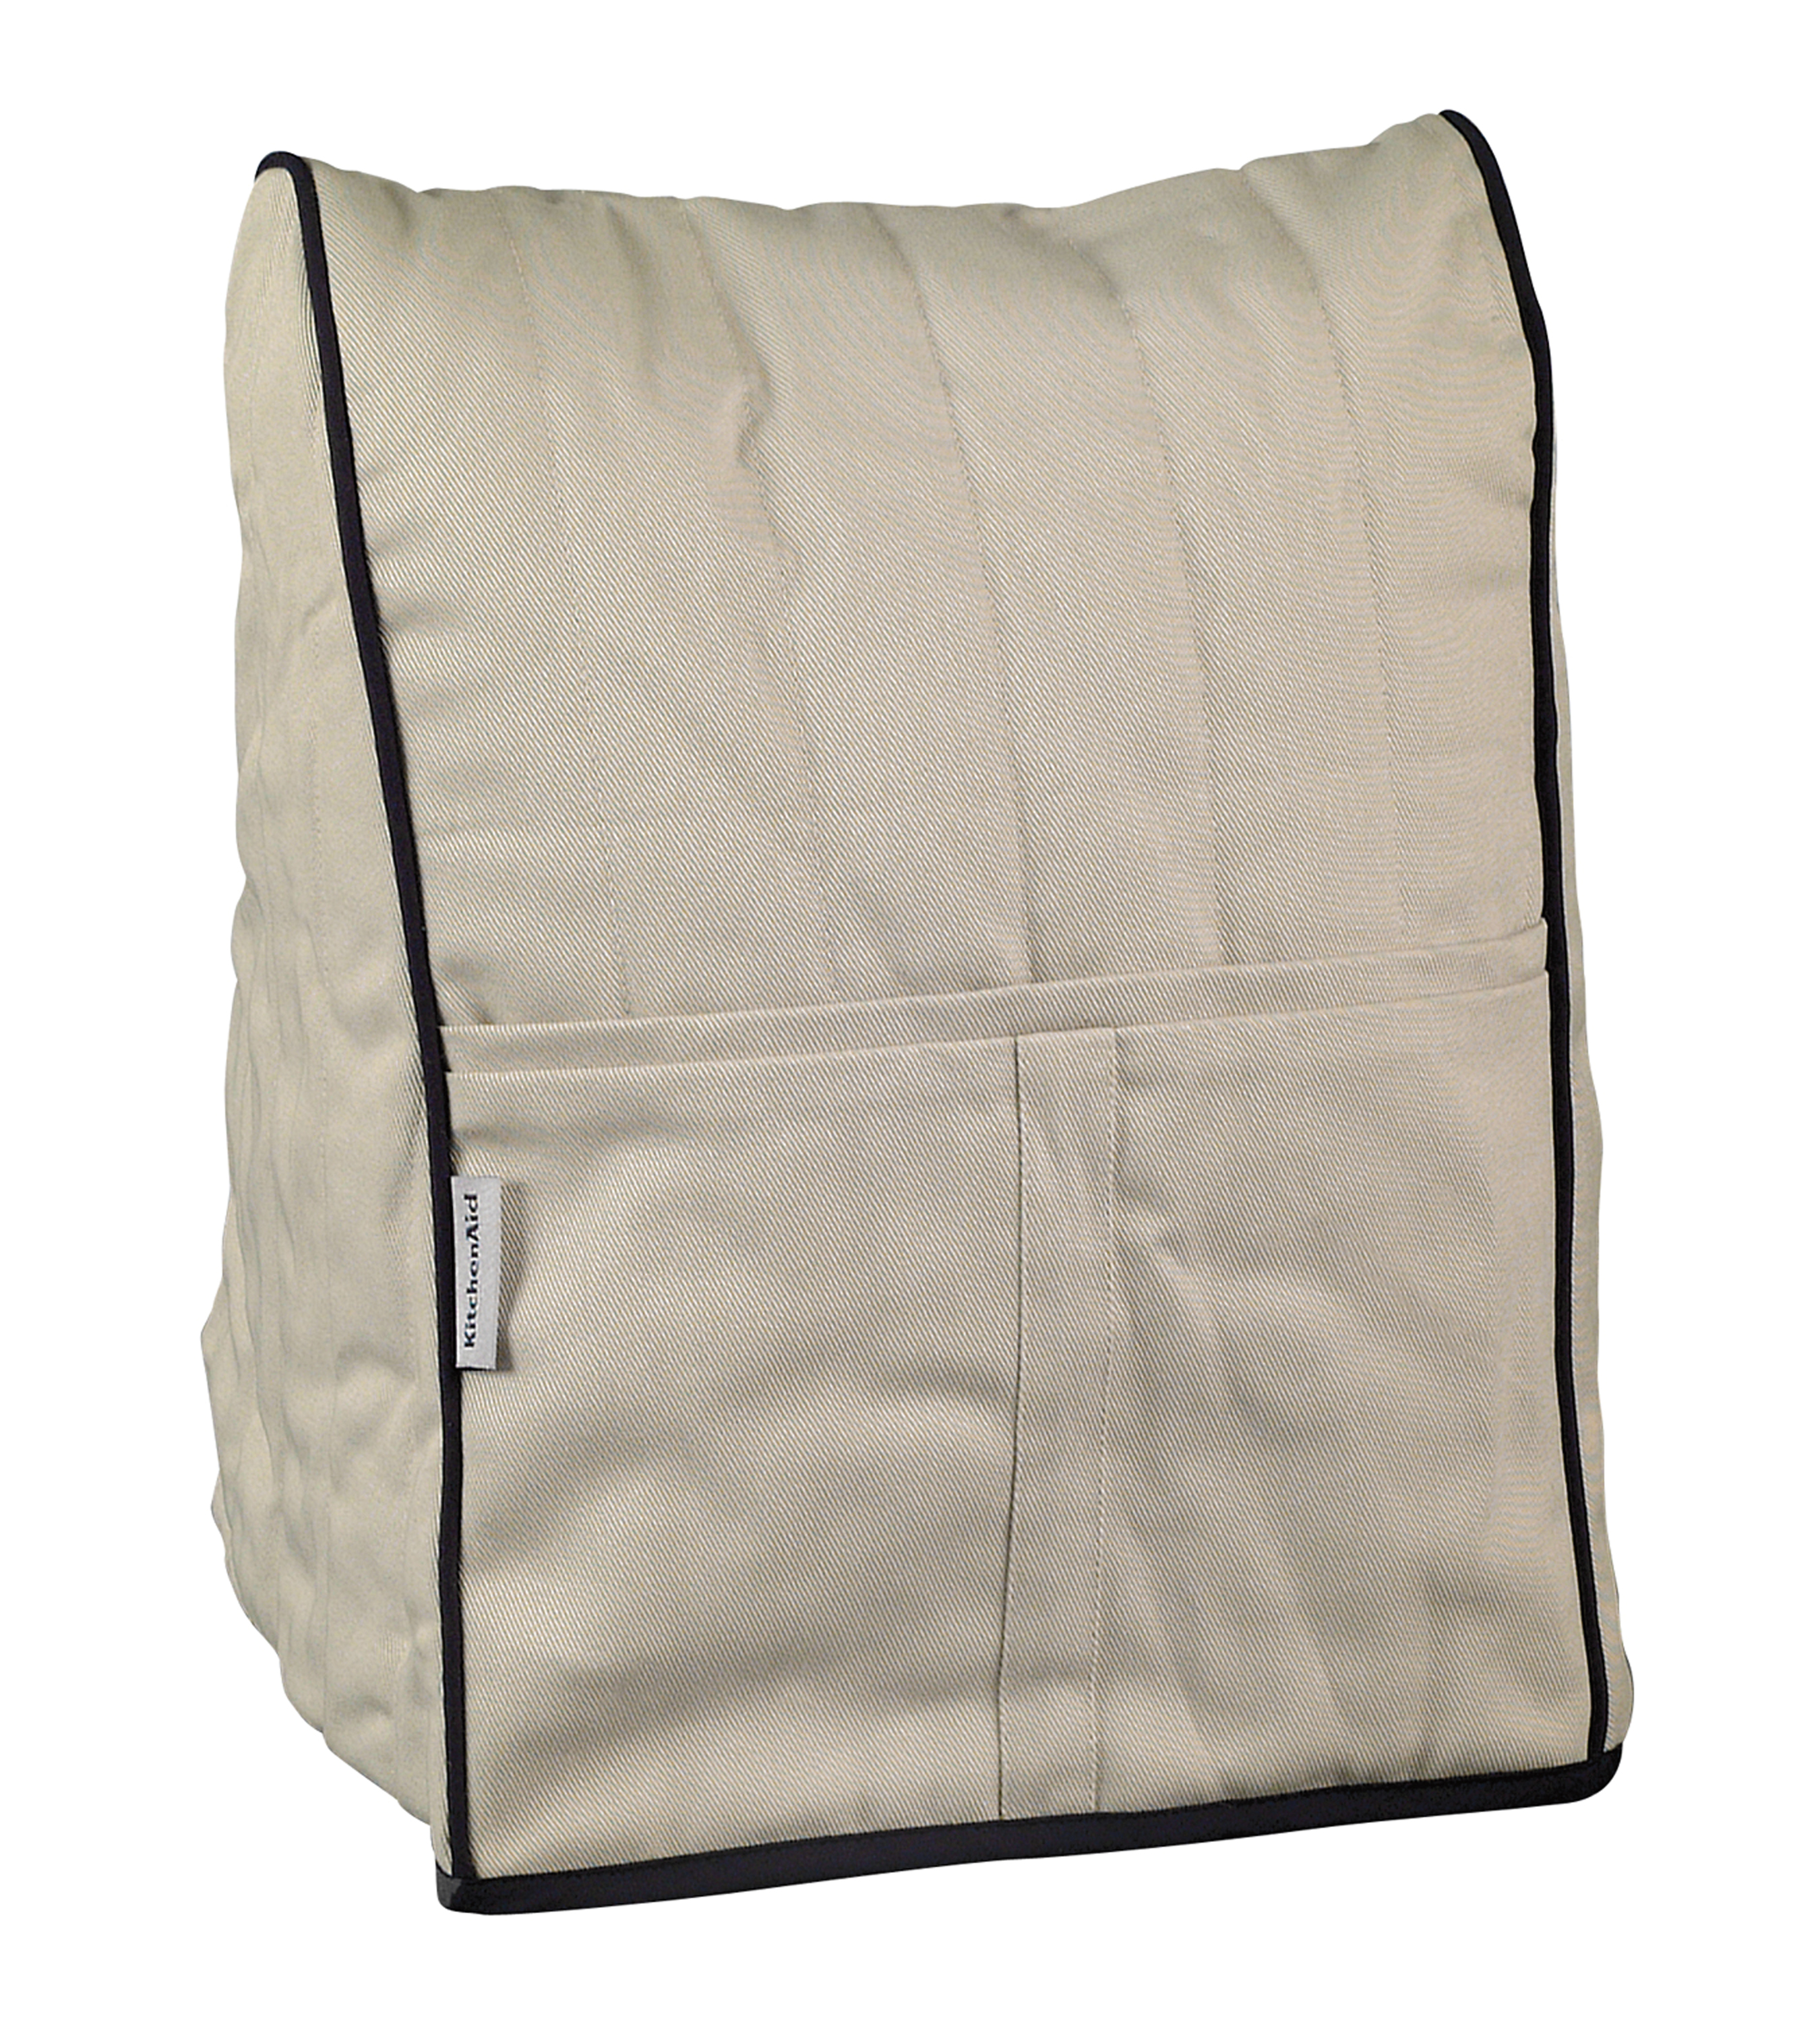 KitchenAid® Cloth Cover, Khaki (KMCC1KB)